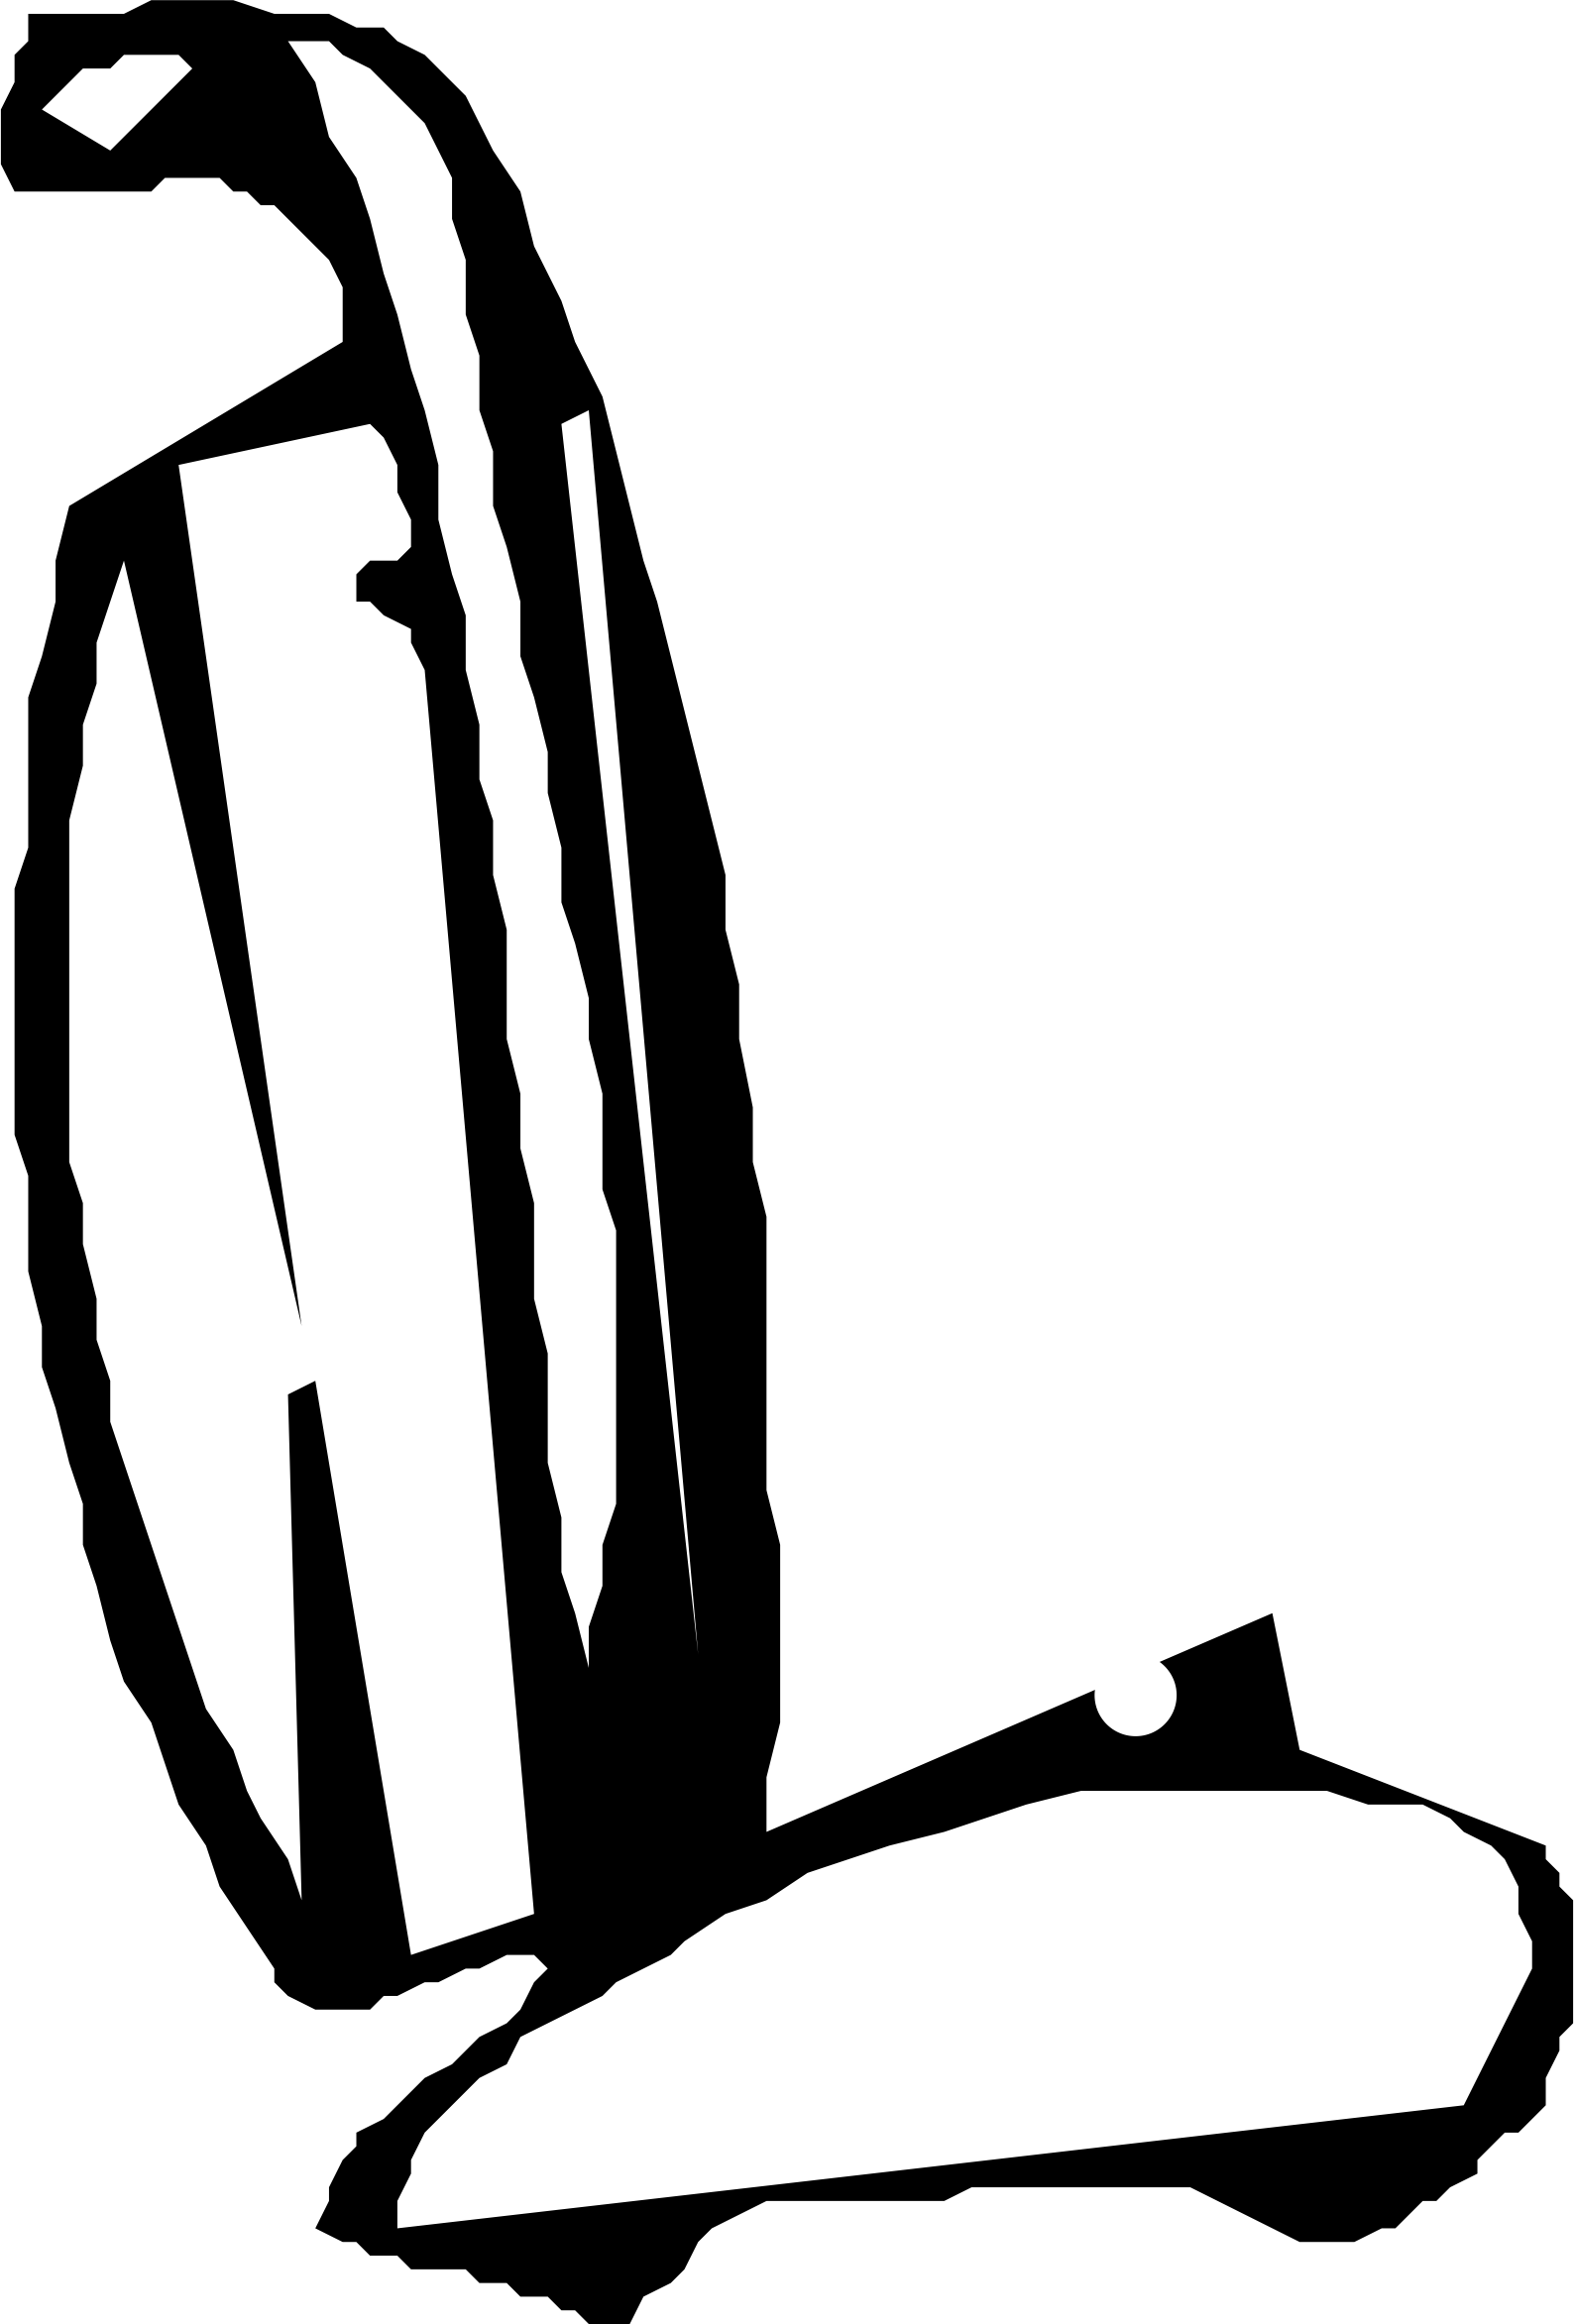 Cleaning clipart black and white, Cleaning black and white ... (1588 x 2345 Pixel)